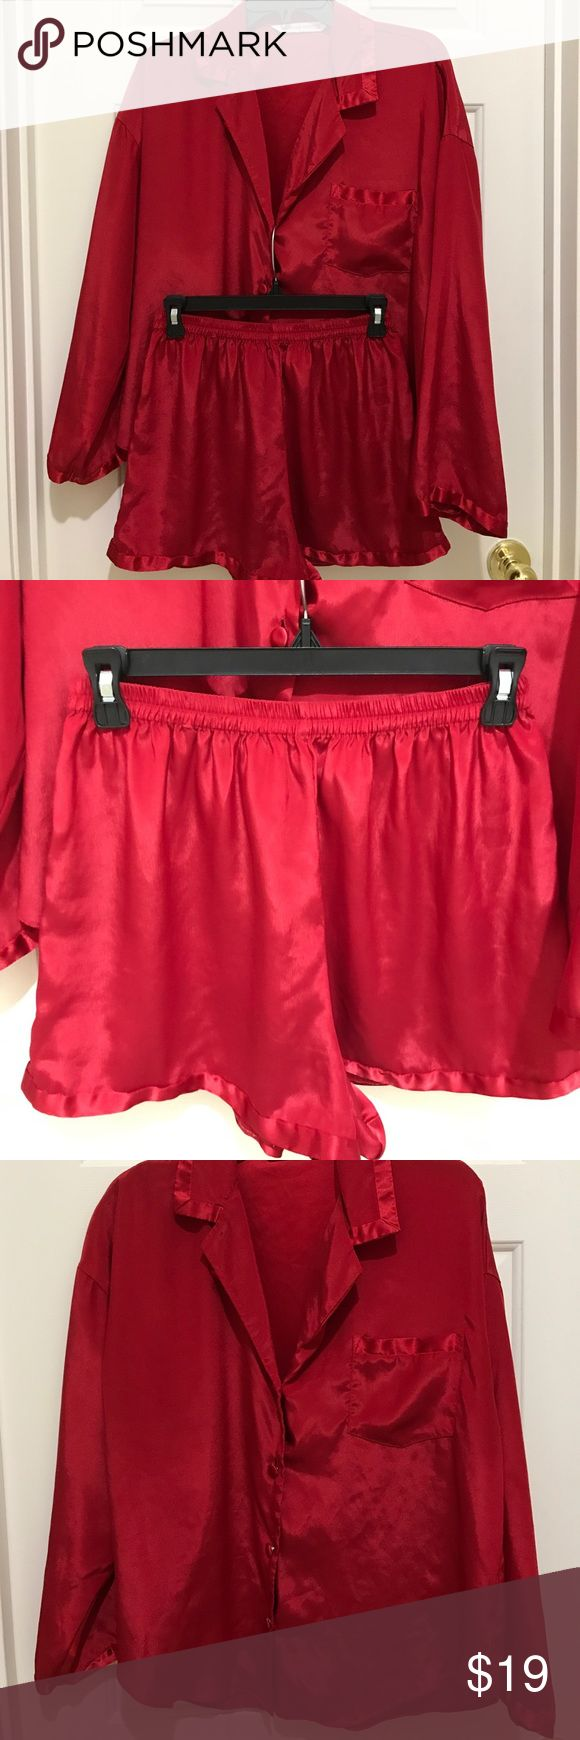 Victoria Secrets Holiday Pajama Short Set Stunning red button front top with matching elastic waist shorts/EUC no visible flaws/100% Polyester/machine washable Victoria's Secret Intimates & Sleepwear Pajamas